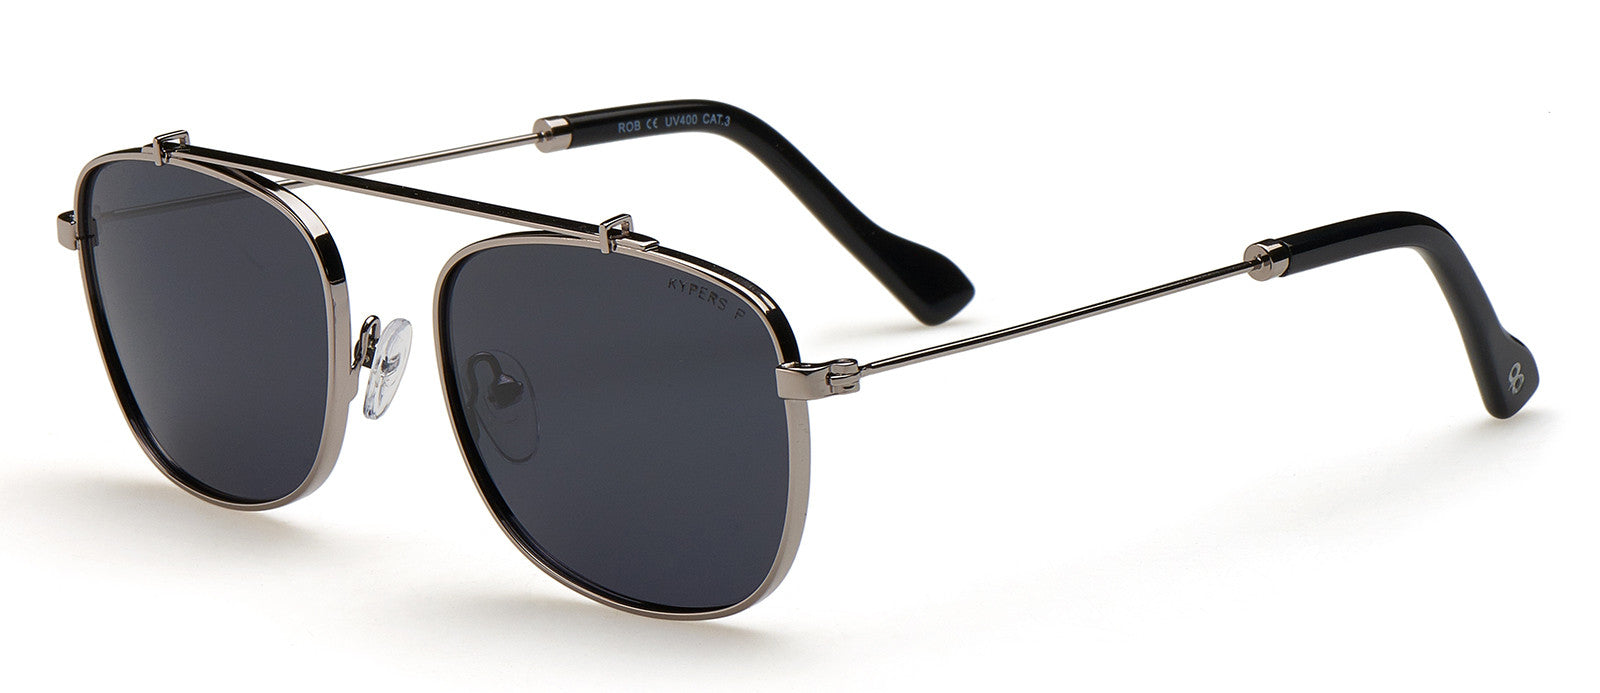 KYPERS sunglasses model ROB RB002 with gun frame and blue revo lens